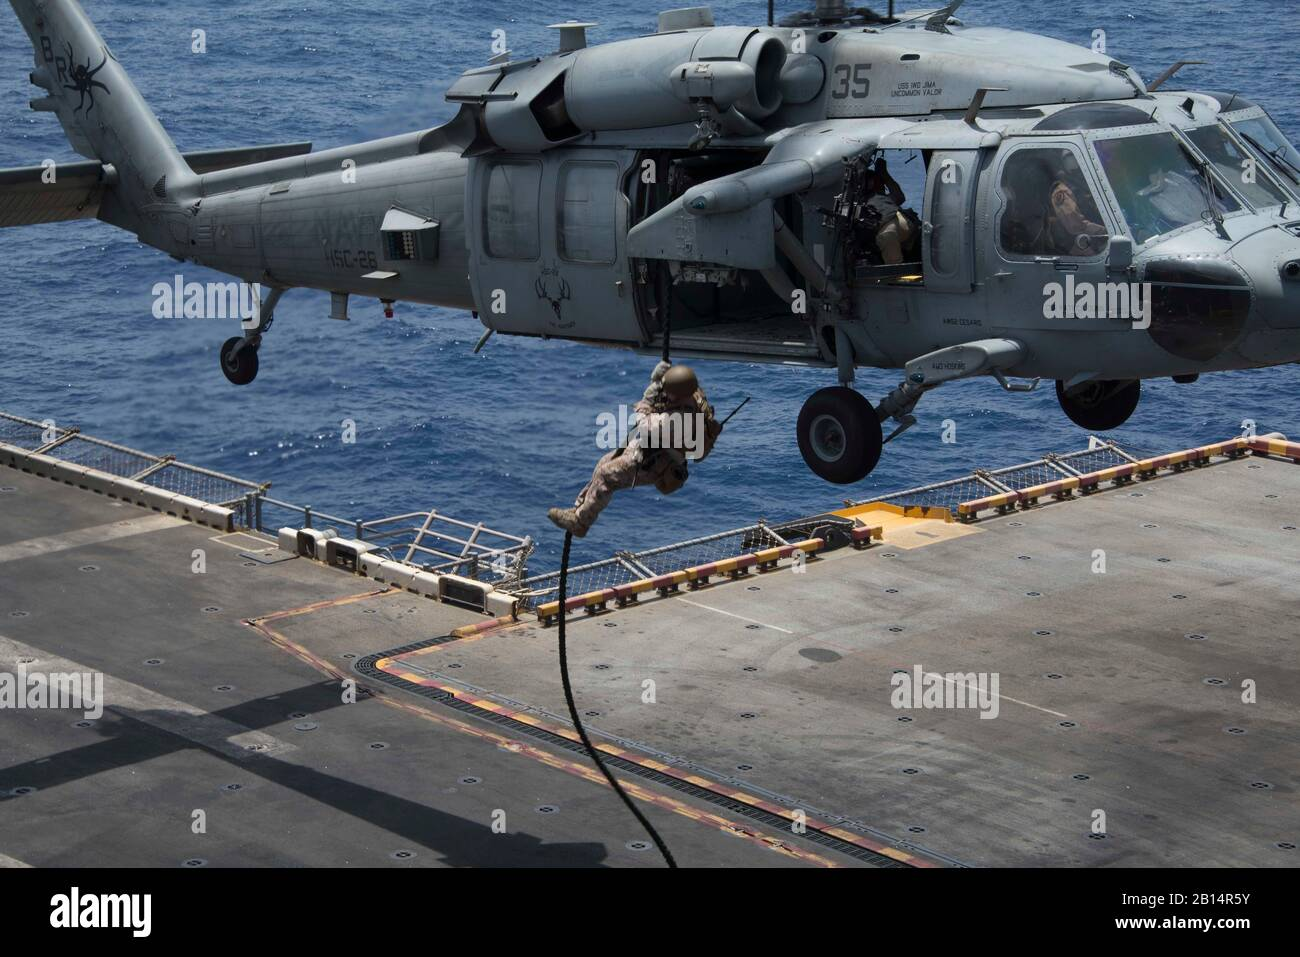 A U.S. Marine assigned to the 26th Marine Expeditionary Unit, fast ropes from an MH-60S Sea Hawk helicopter attached to Helicopter Sea Combat Squadron (HSC) 28, to the flight deck of the Wasp-class amphibious assault ship USS Iwo Jima (LHD 7), during a fast rope exercise in the 5th Fleet Area of Operations, May 21, 2018. The Iwo Jima was deployed to the U.S. 5th Fleet area of operations in support of maritime security operations to reassure allies and partners, and preserve the freedom of navigation and the free flow of commerce in the region. (U.S. Navy photo by Mass Communication Specialist Stock Photo